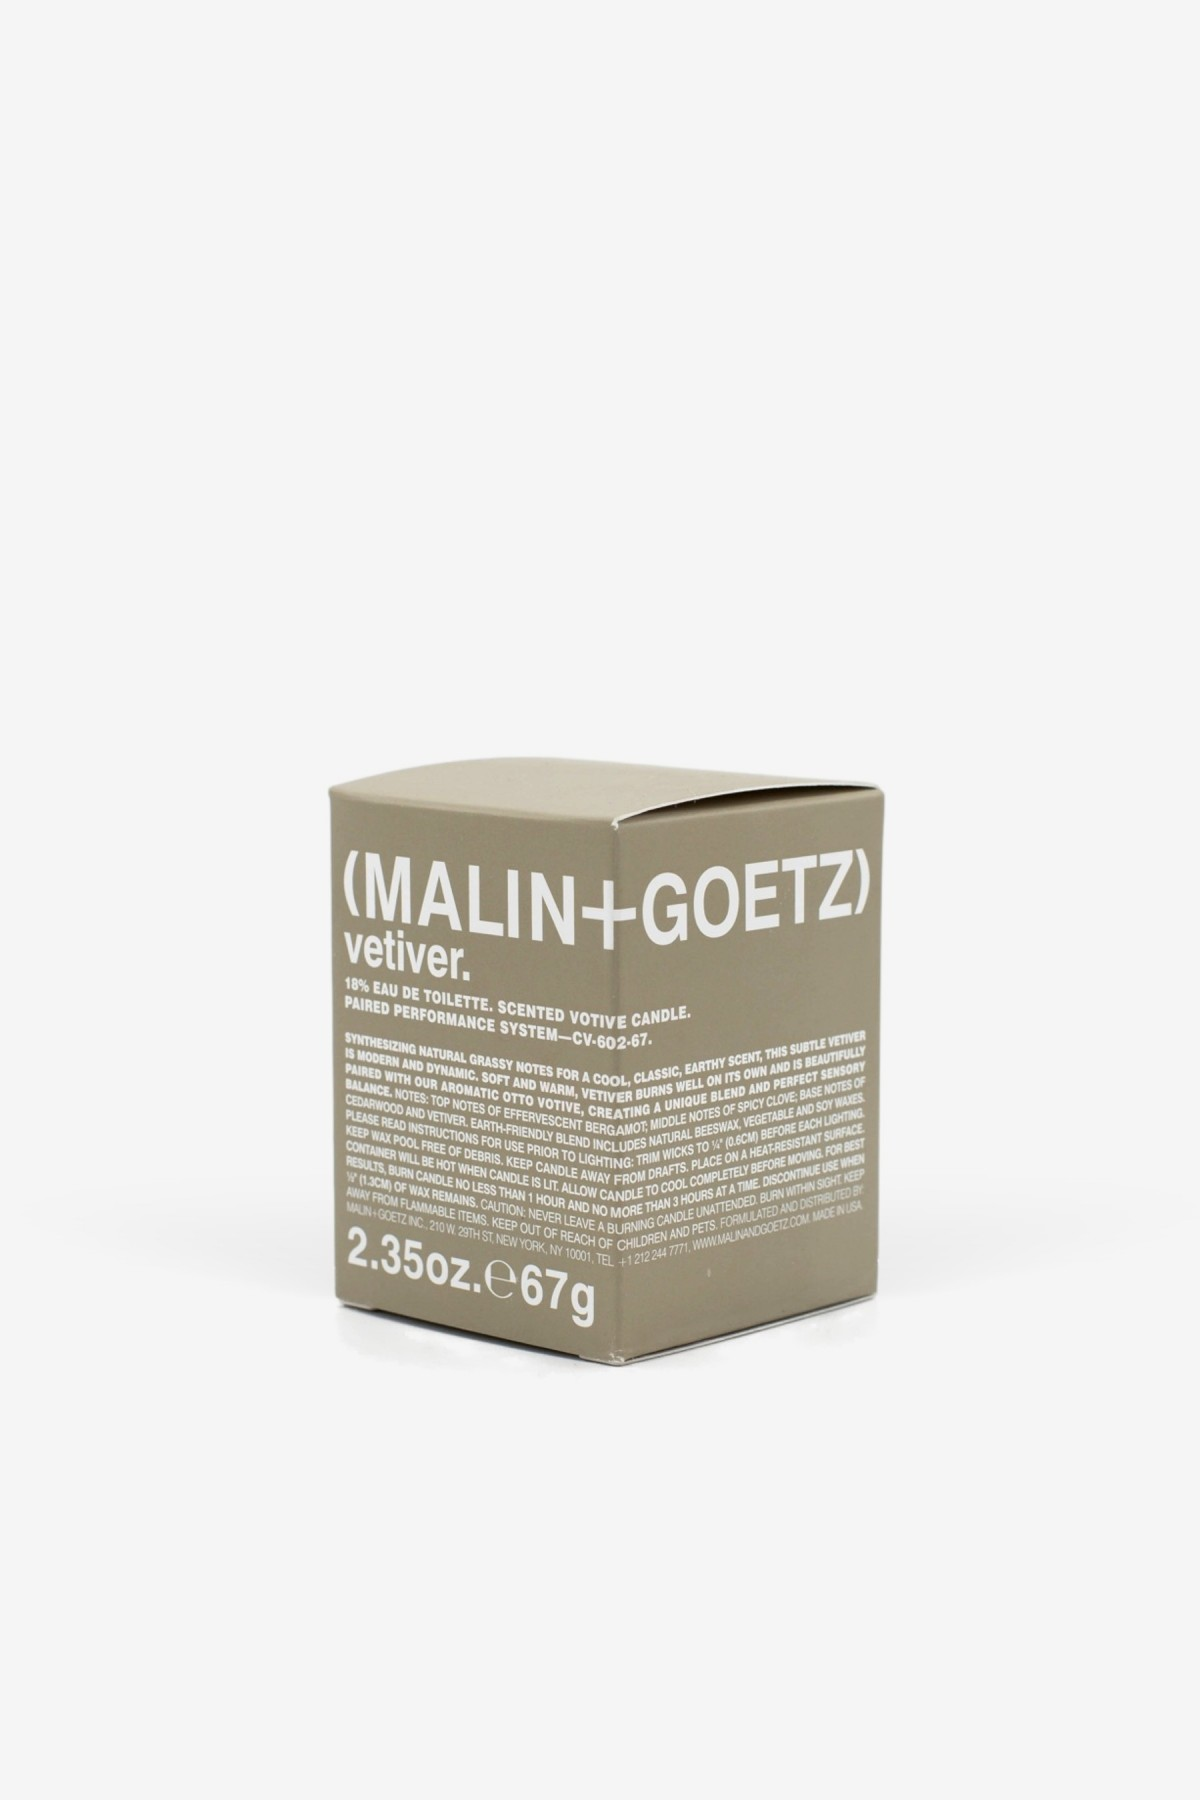 Malin+Goetz Vetiver Votive 67g in